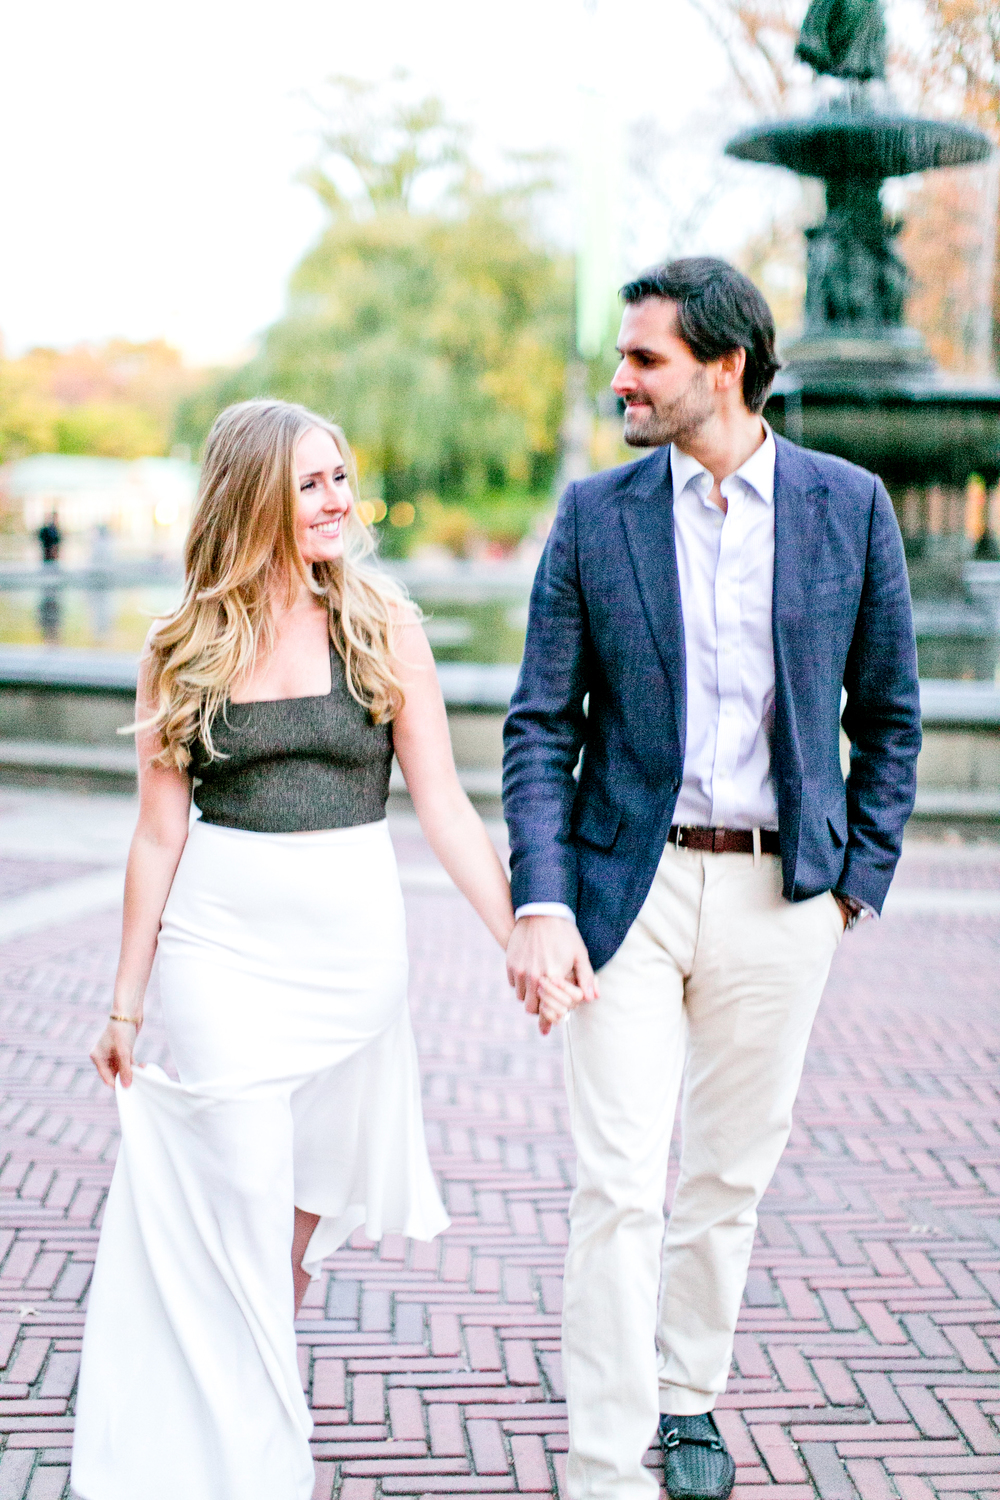 NEW YORK CITY ENGAGEMENTS: COURTNEY + ERIK